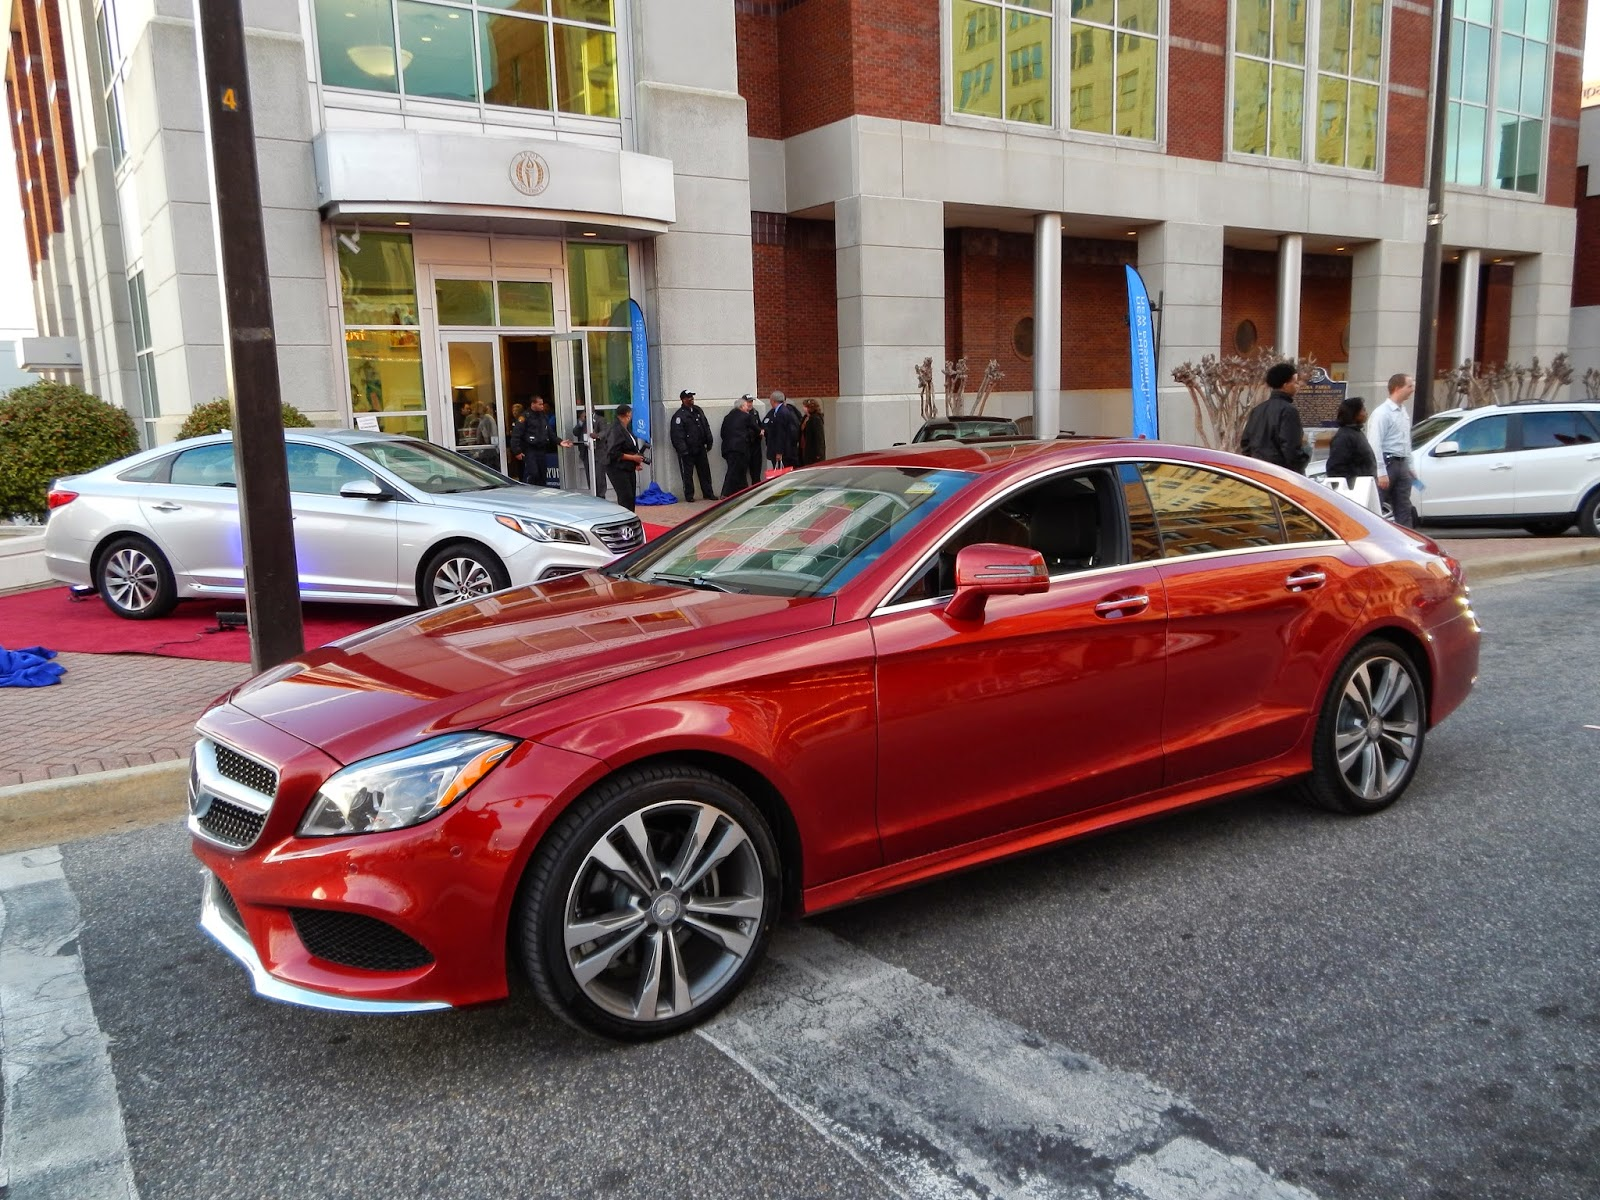 Auto industry connection selma50 the for Mercedes benz montgomery road